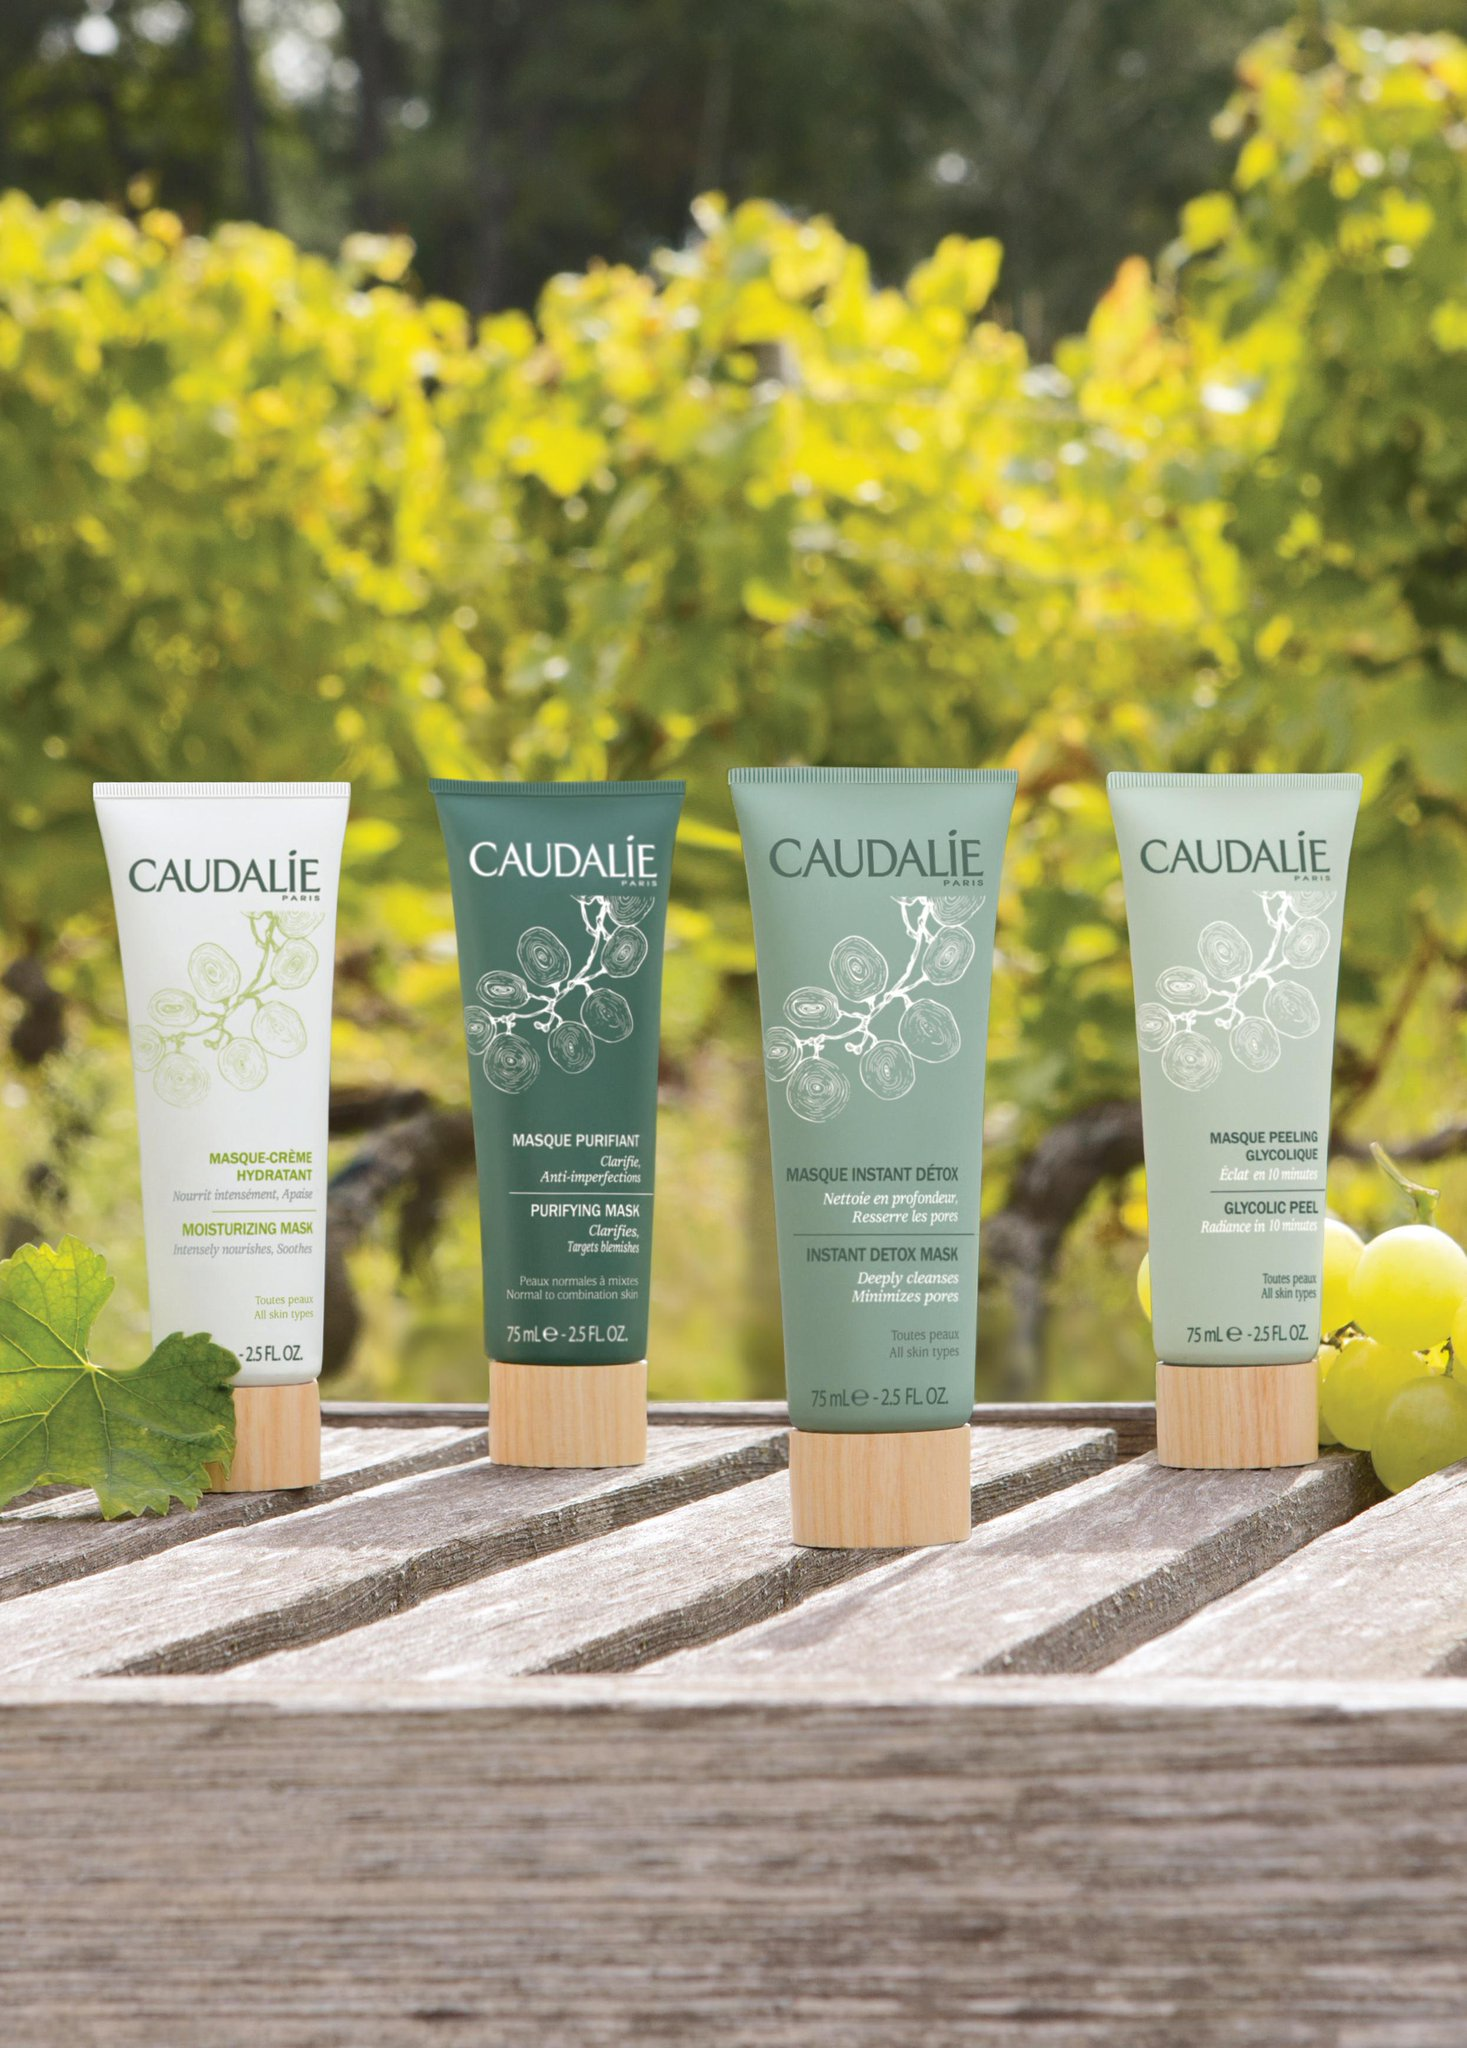 Caudalie launches The Mask Collection http://t.co/XurVsIUlP6 @CaudalieUK @KilpatrickTeam @NATAPR_ http://t.co/SGnip6iXaQ